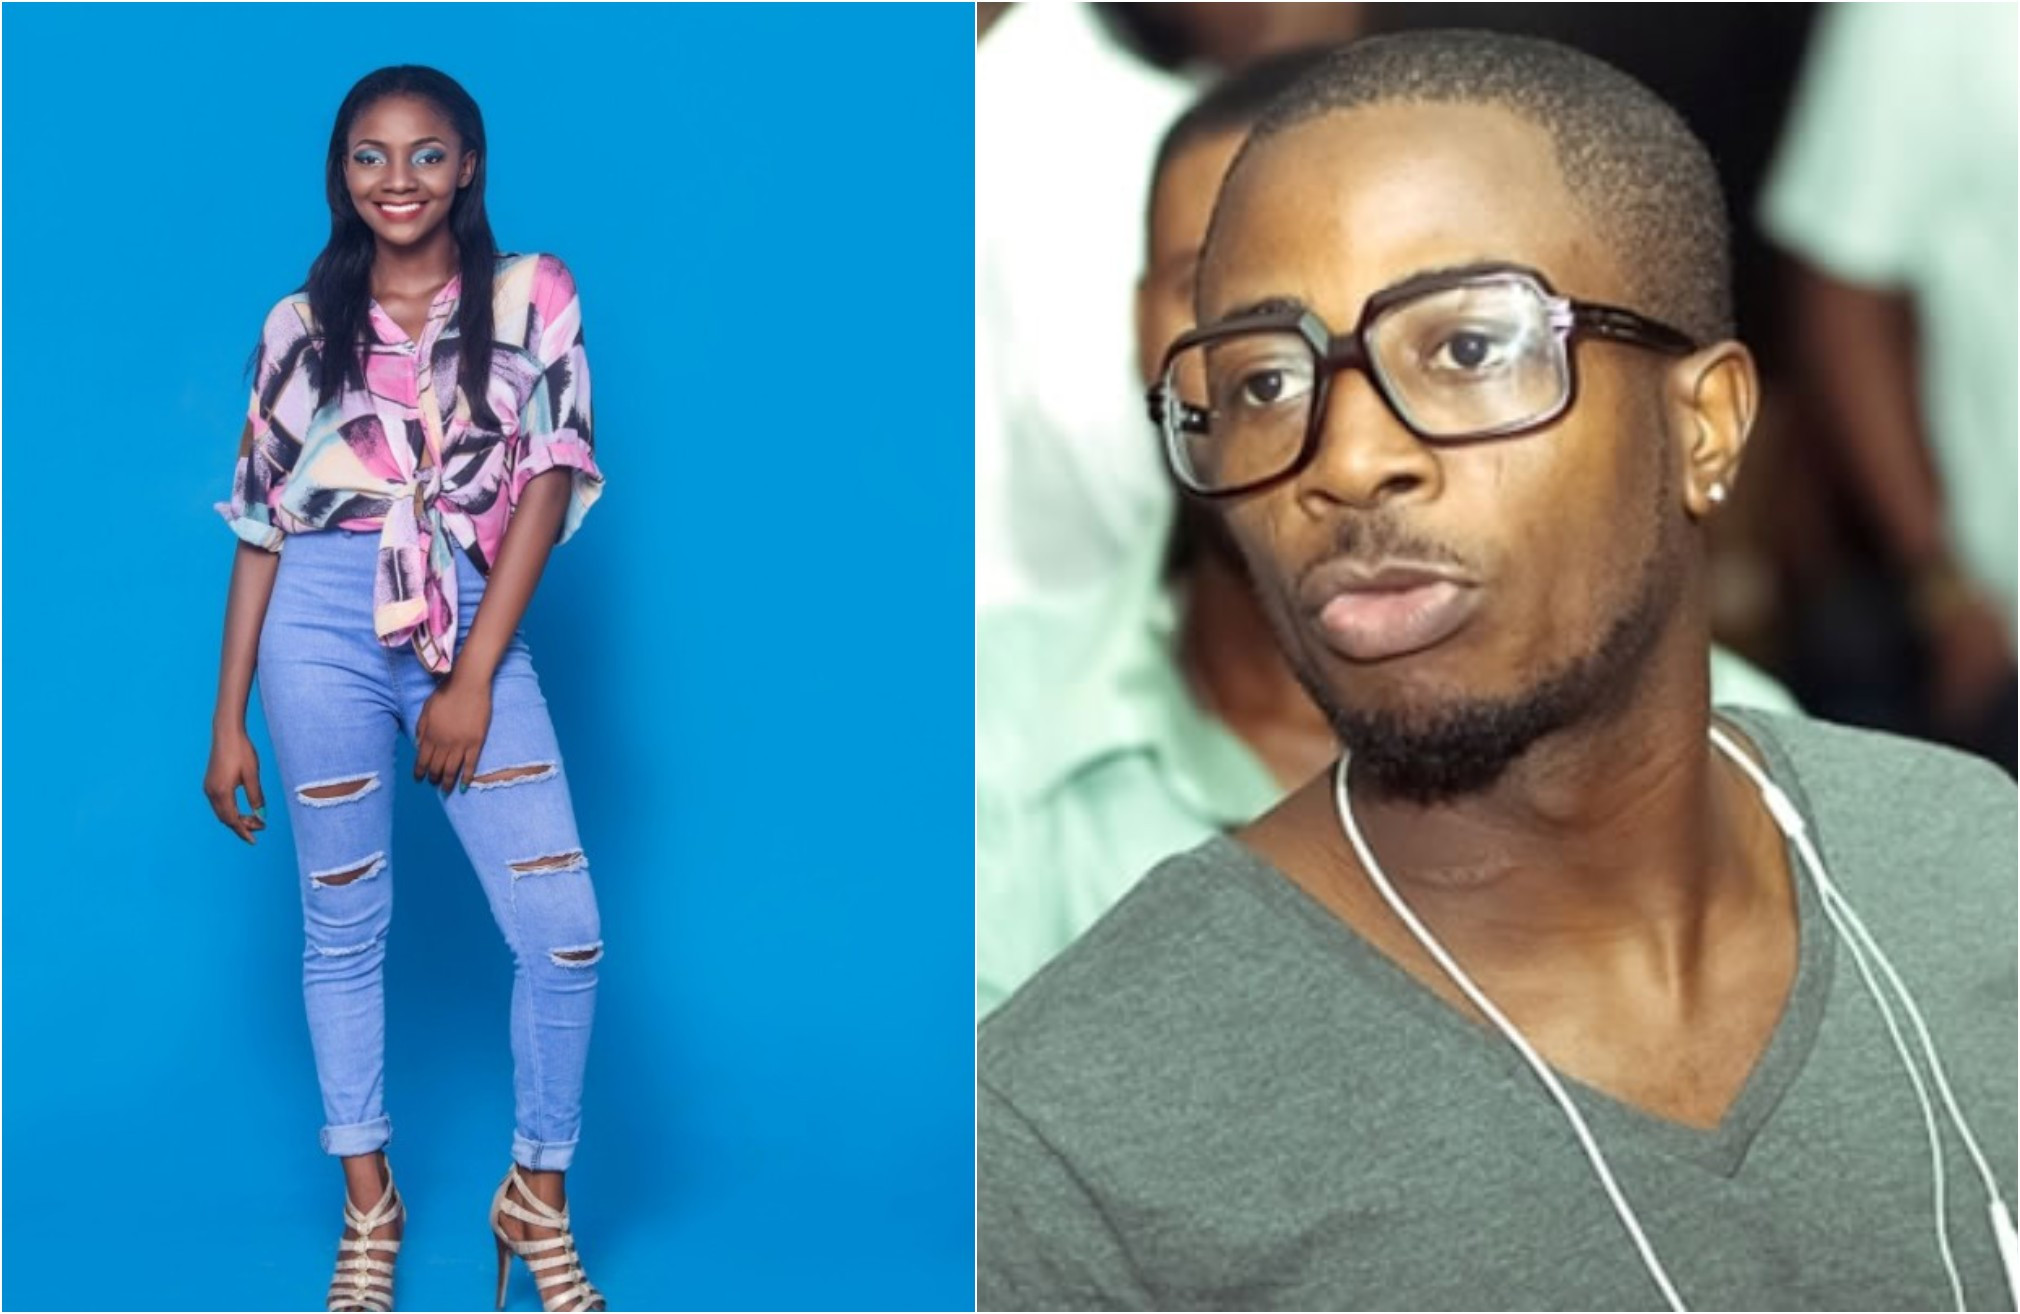 5e16ccc5c9ddc - Love Your Partner The Way You Want To Be Loved – Simi Tells Tunde Ednut